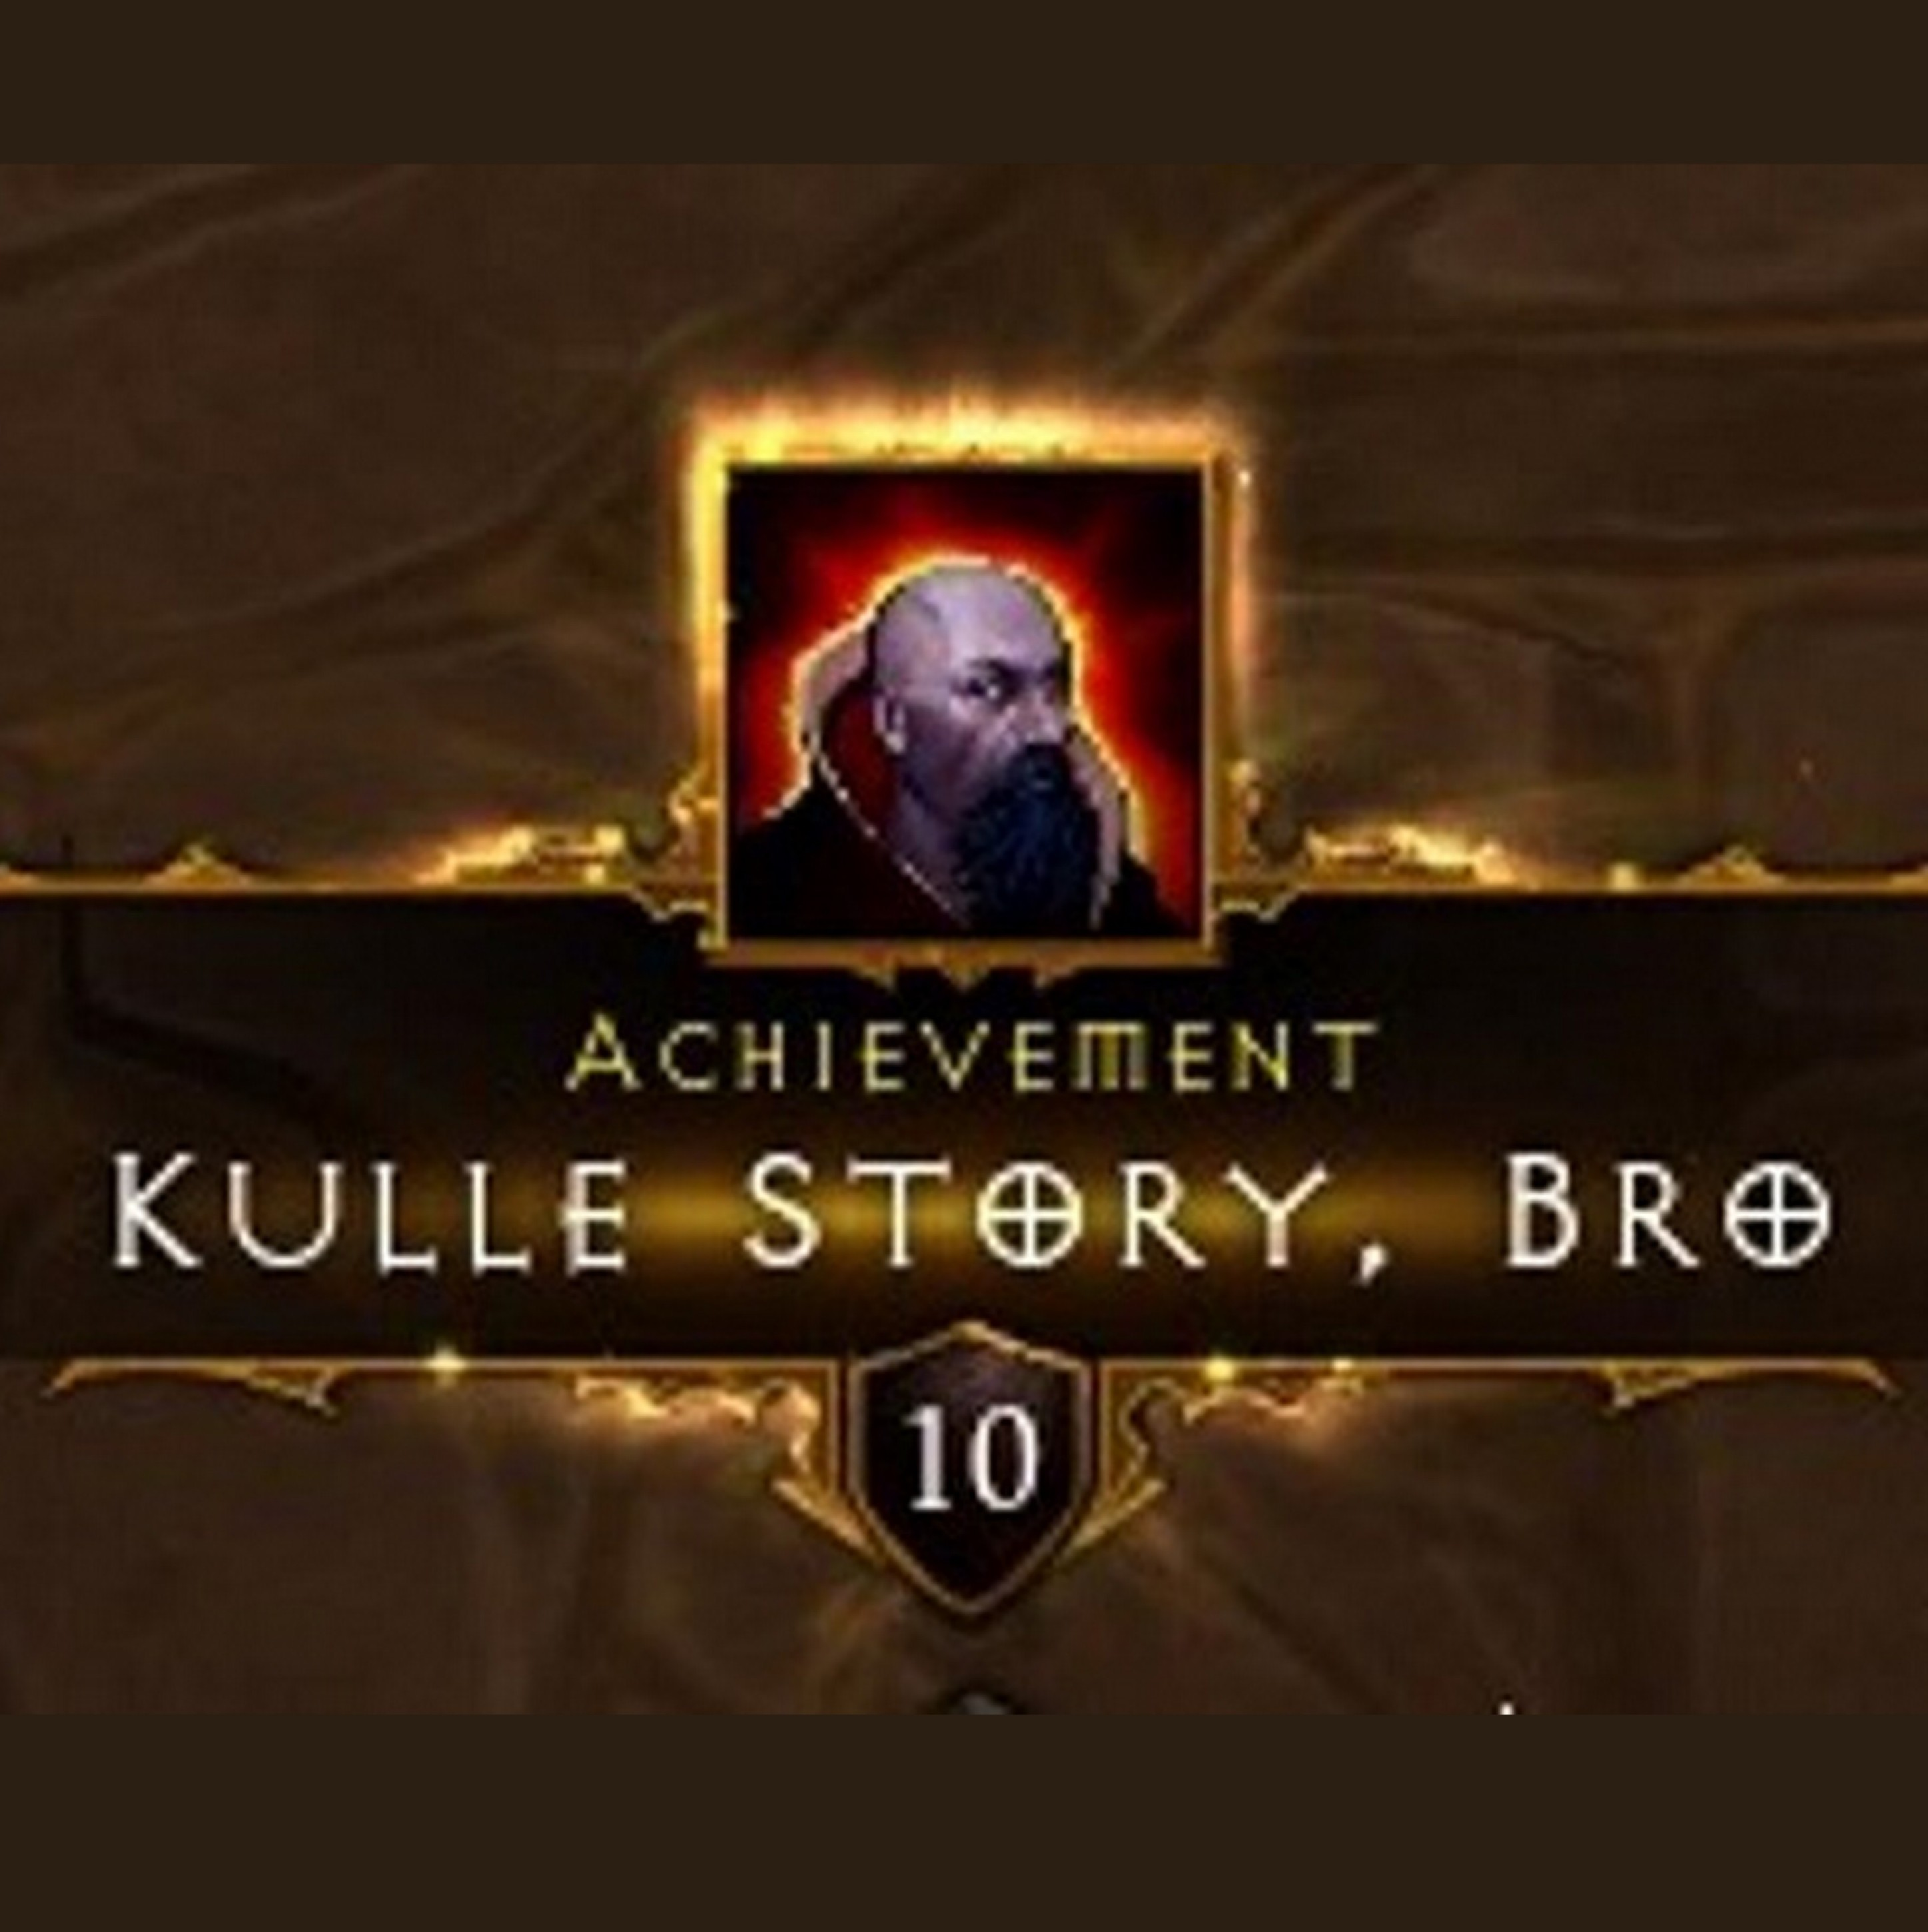 Kulle Story Bro - A Diablo 3 Podcast Episode 30